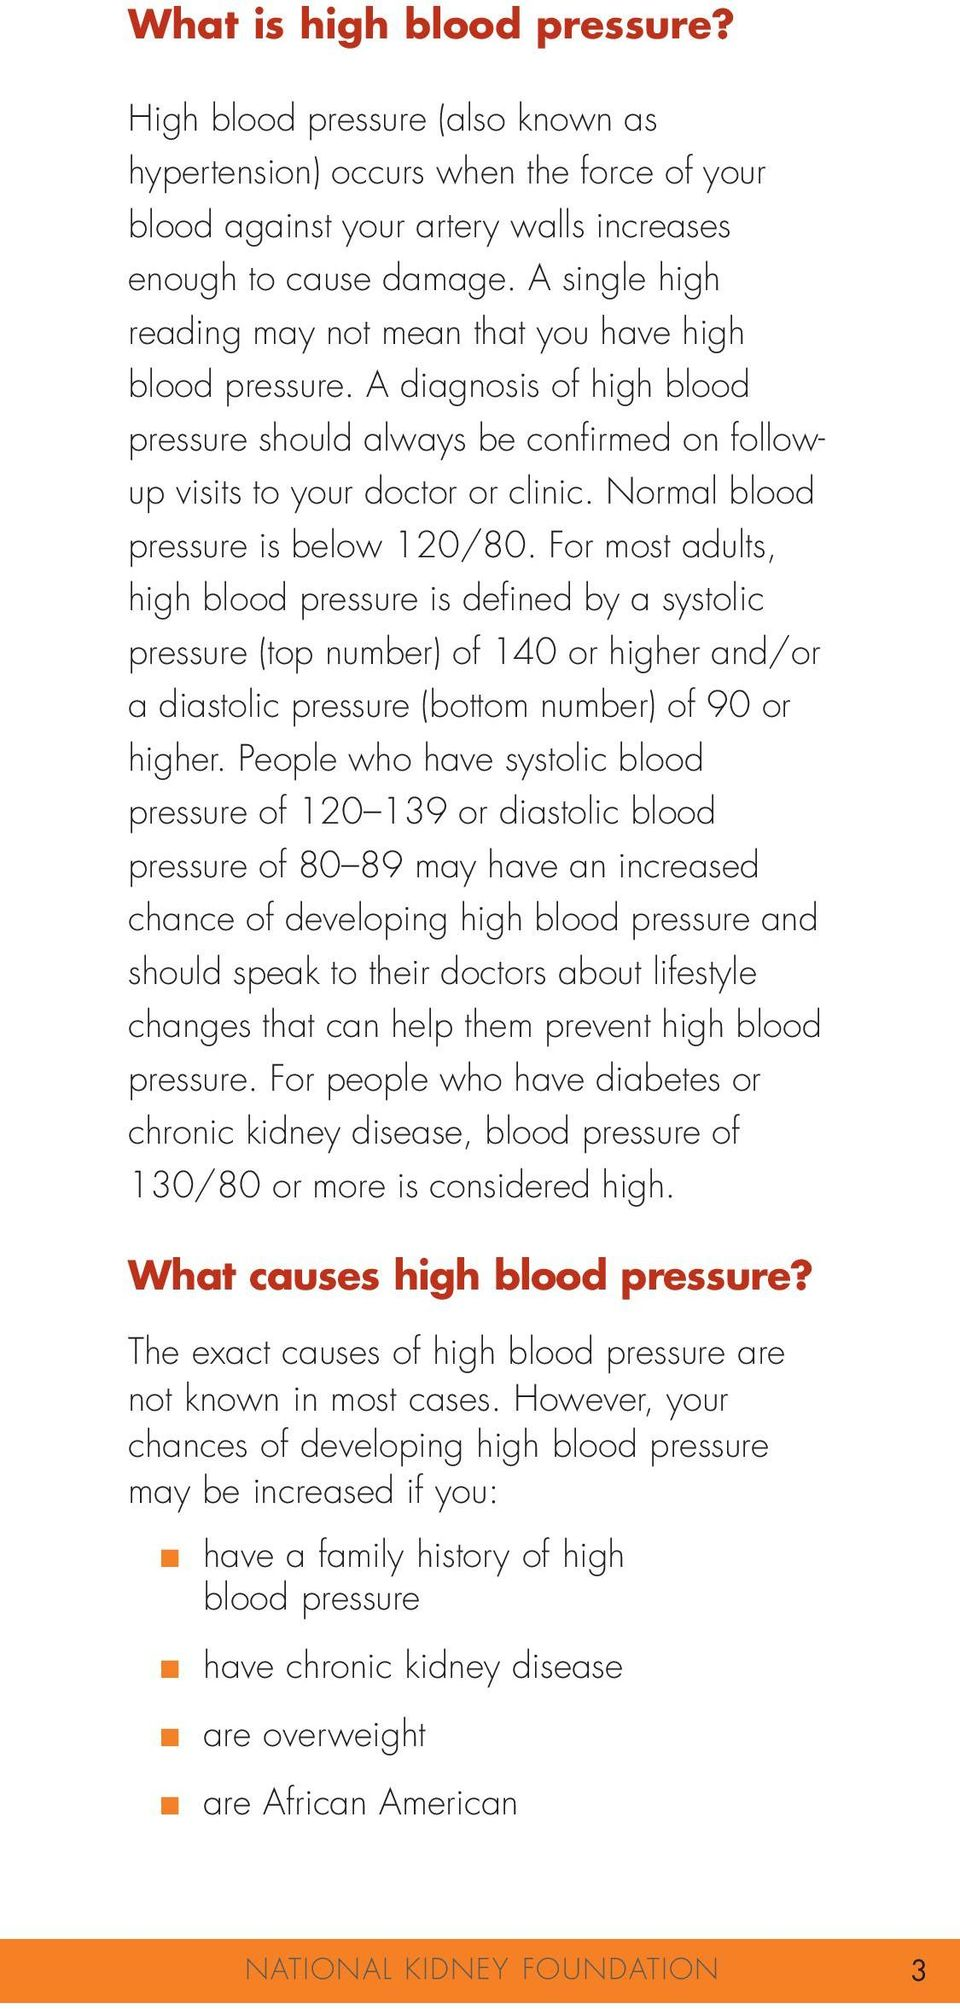 Normal blood pressure is below 120/80. For most adults, high blood pressure is defined by a systolic pressure (top number) of 140 or higher and/or a diastolic pressure (bottom number) of 90 or higher.